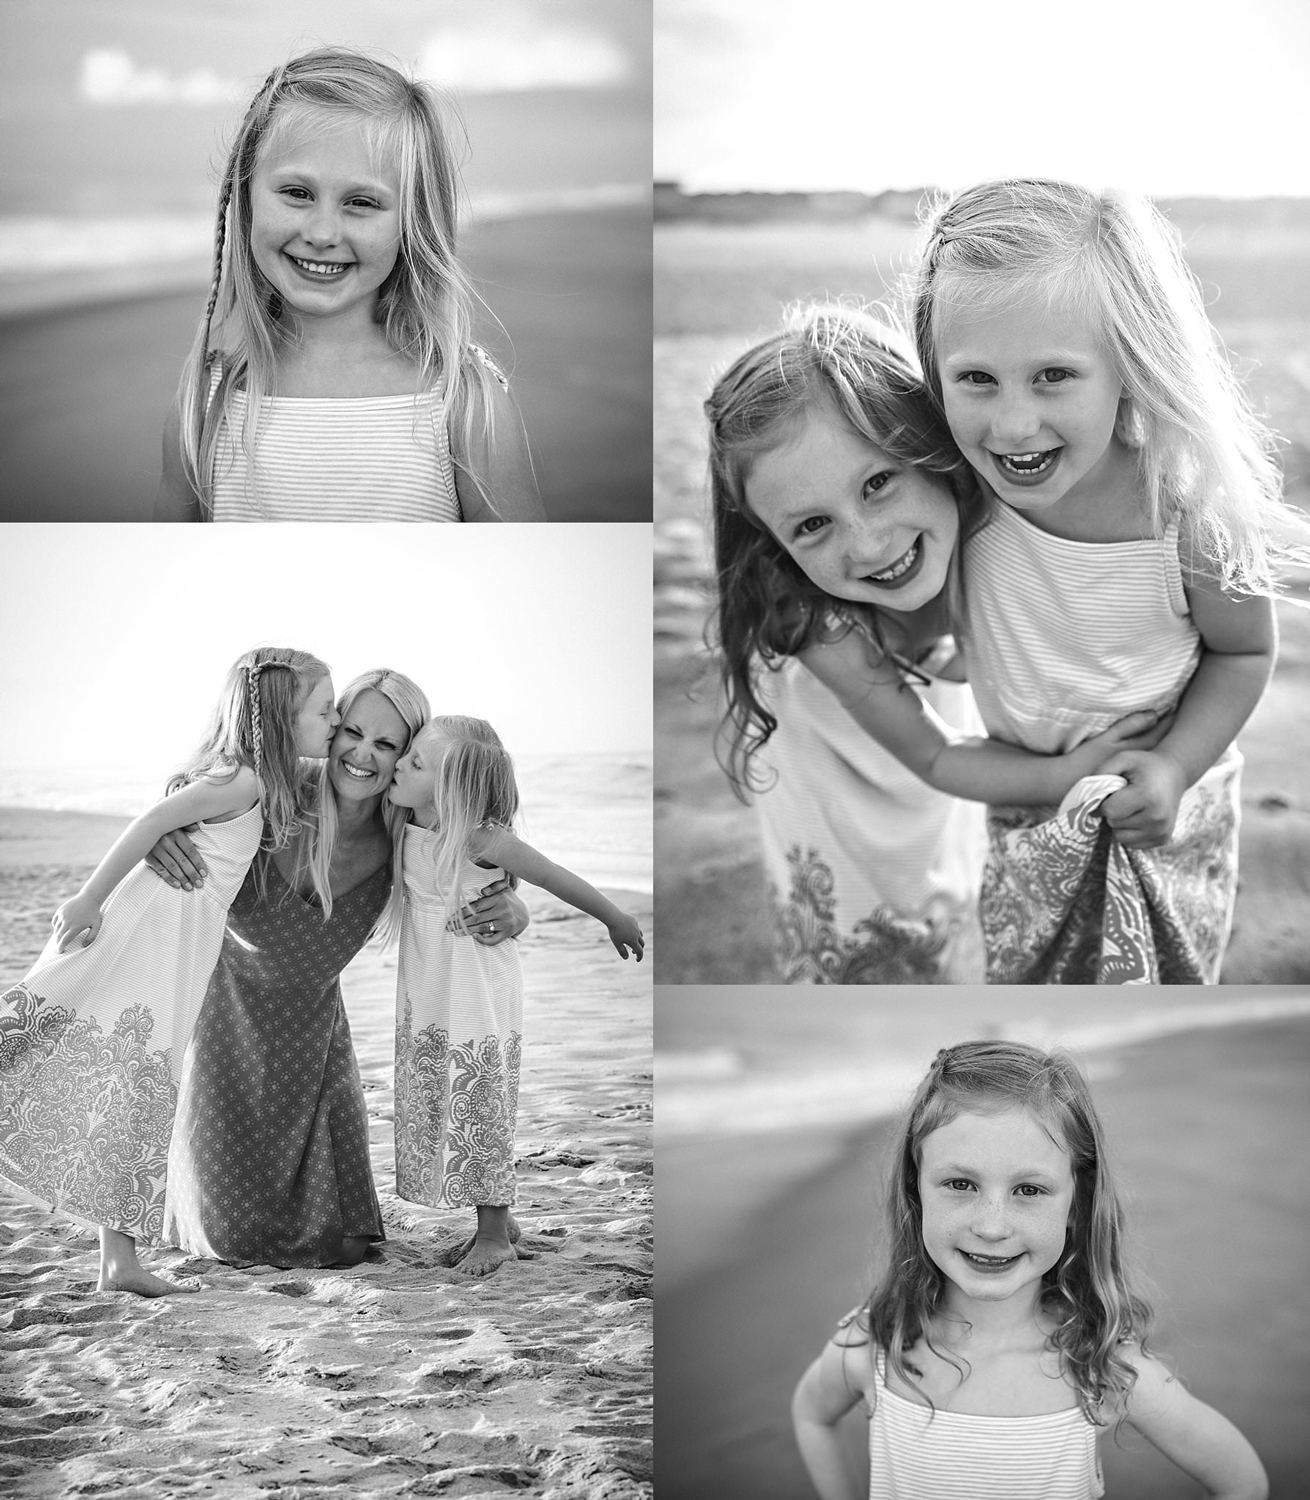 black-and-white-family-beach-photos-virginia-beach-melissa-bliss-photography.jpg